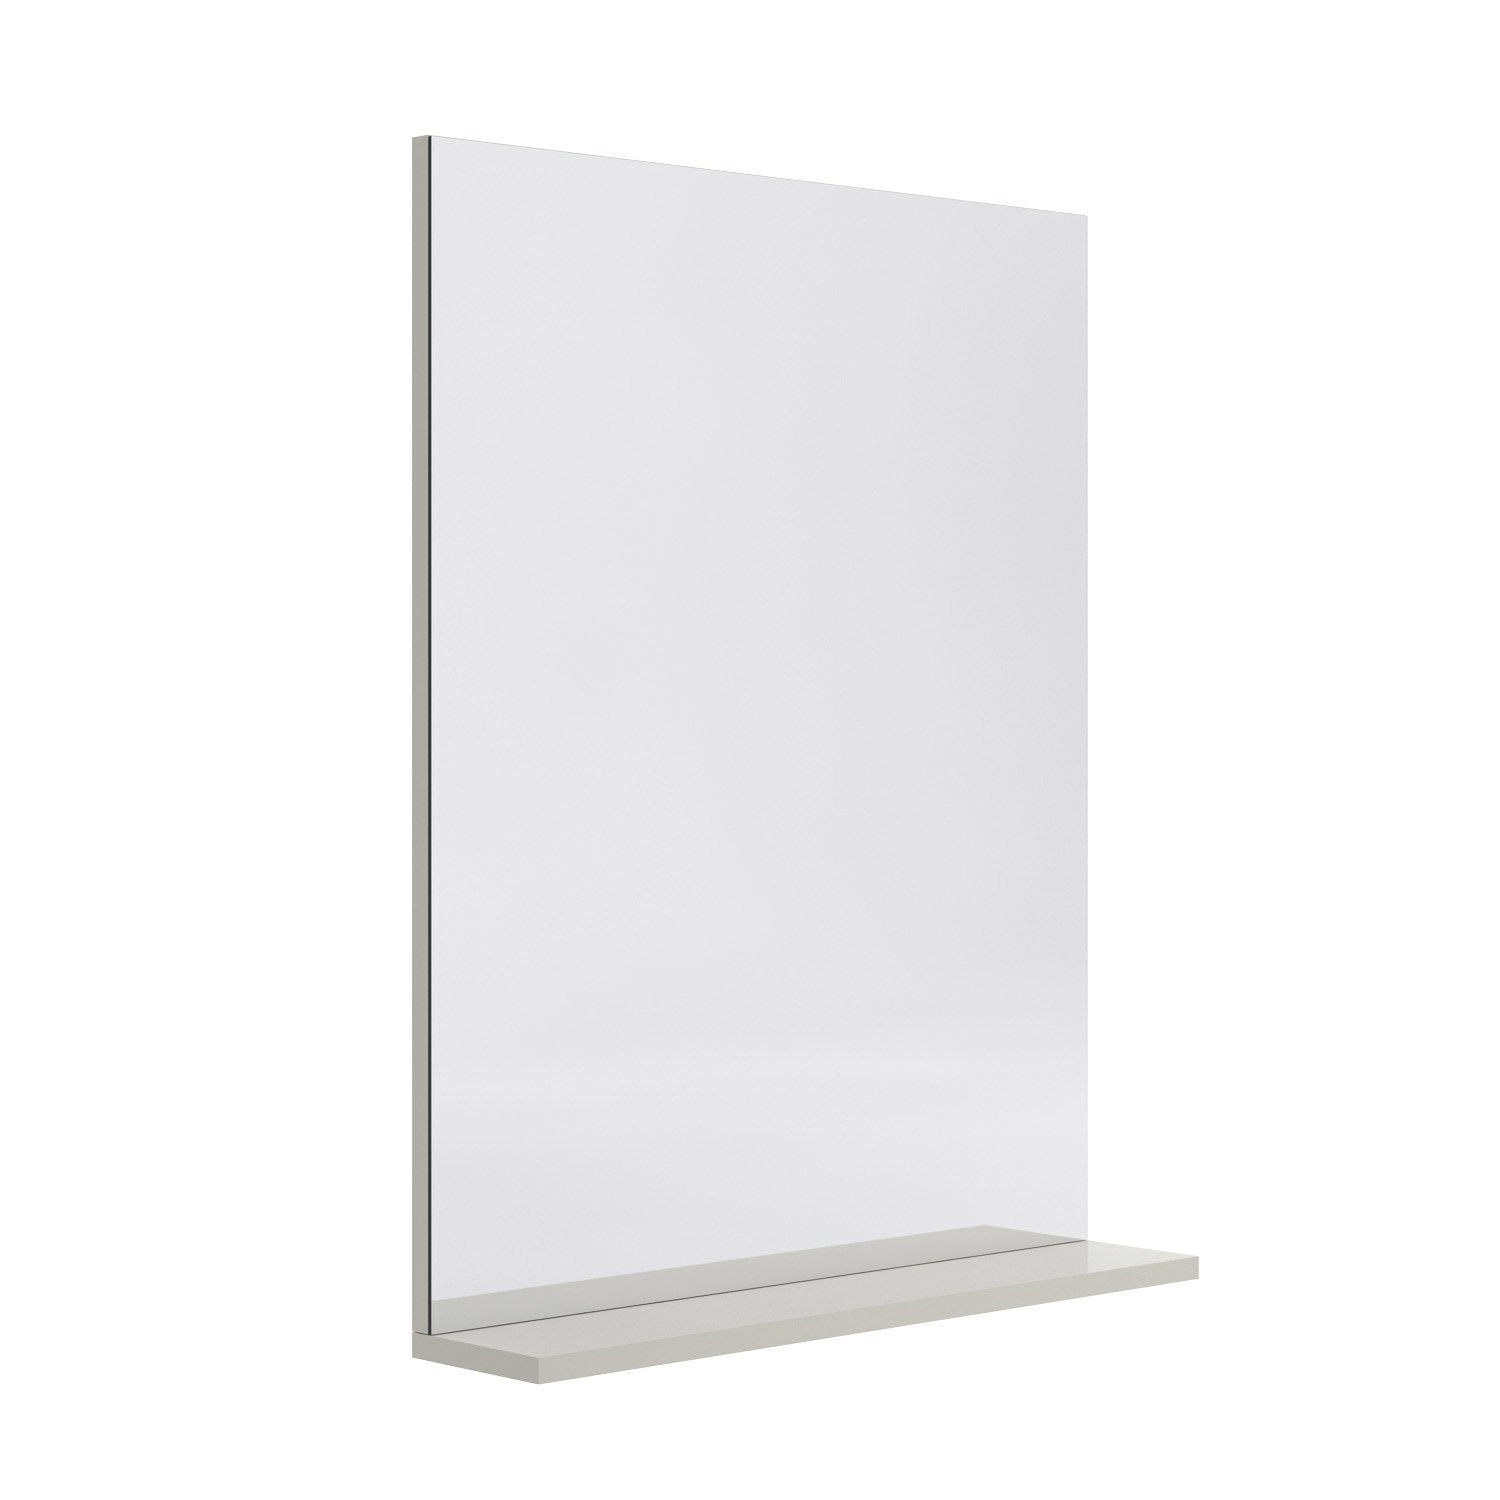 Miroir avec tablette gr ge l 60 0 cm opale leroy merlin for Miroir tablette